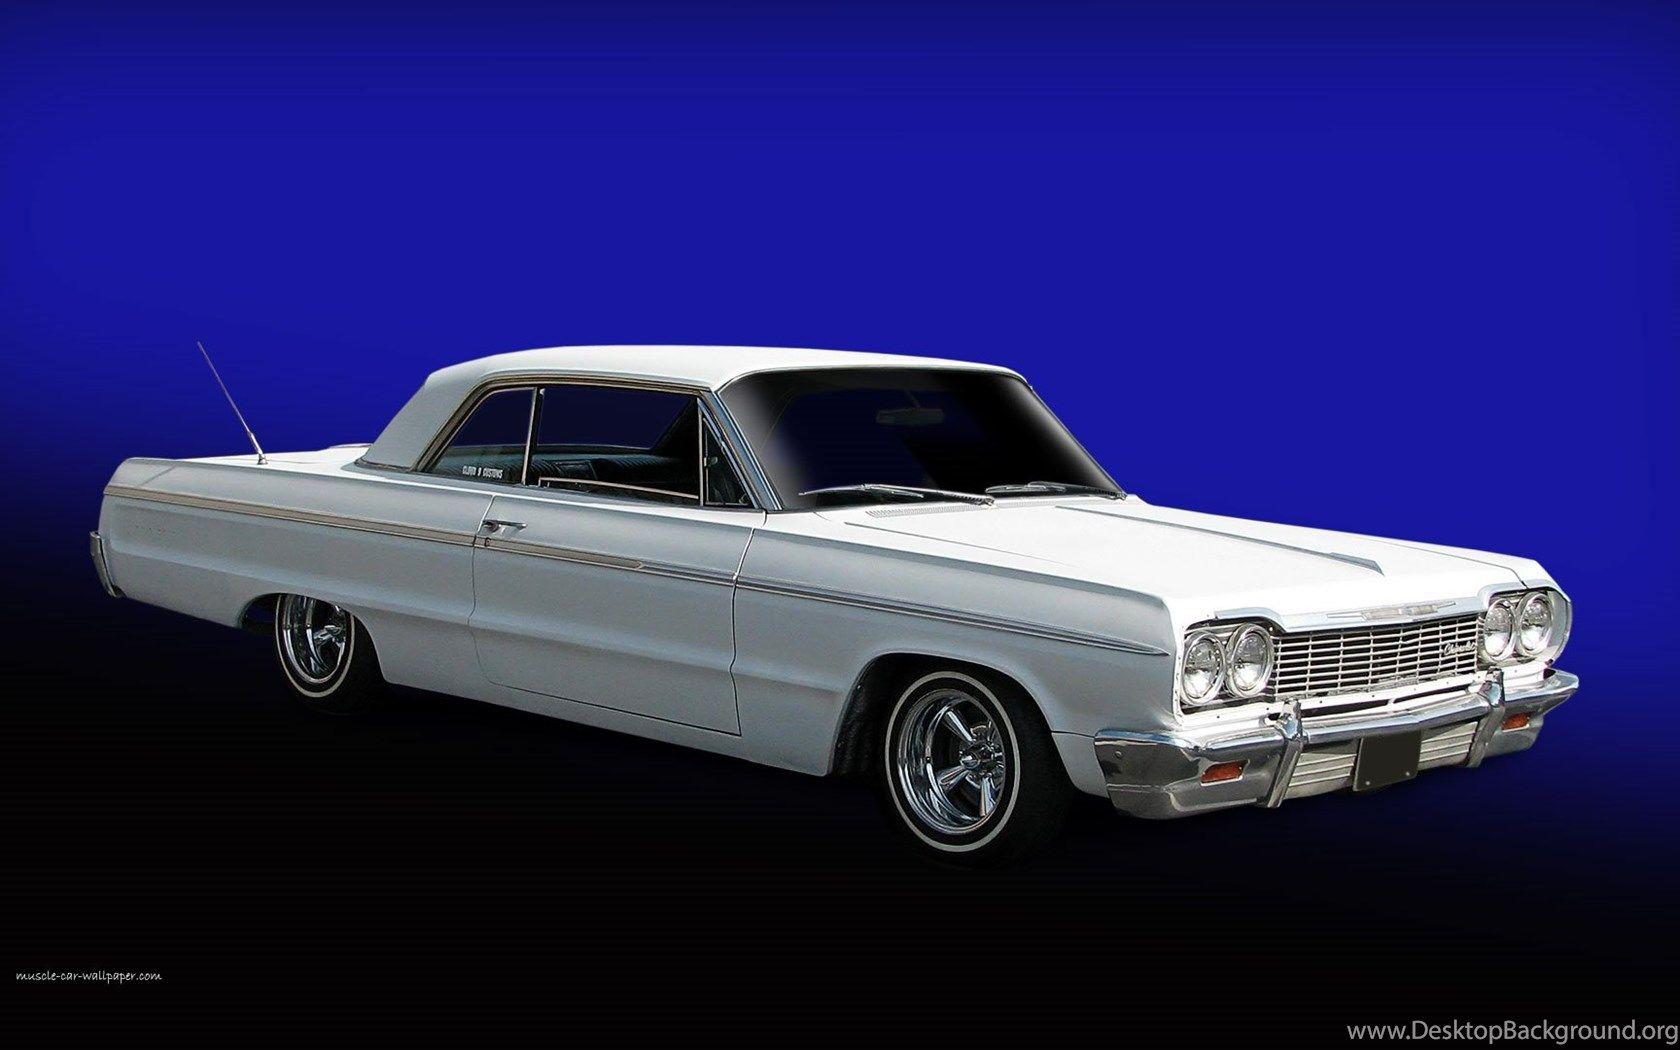 1964 Chevrolet Impala Wallpapers Picture Desktop Background